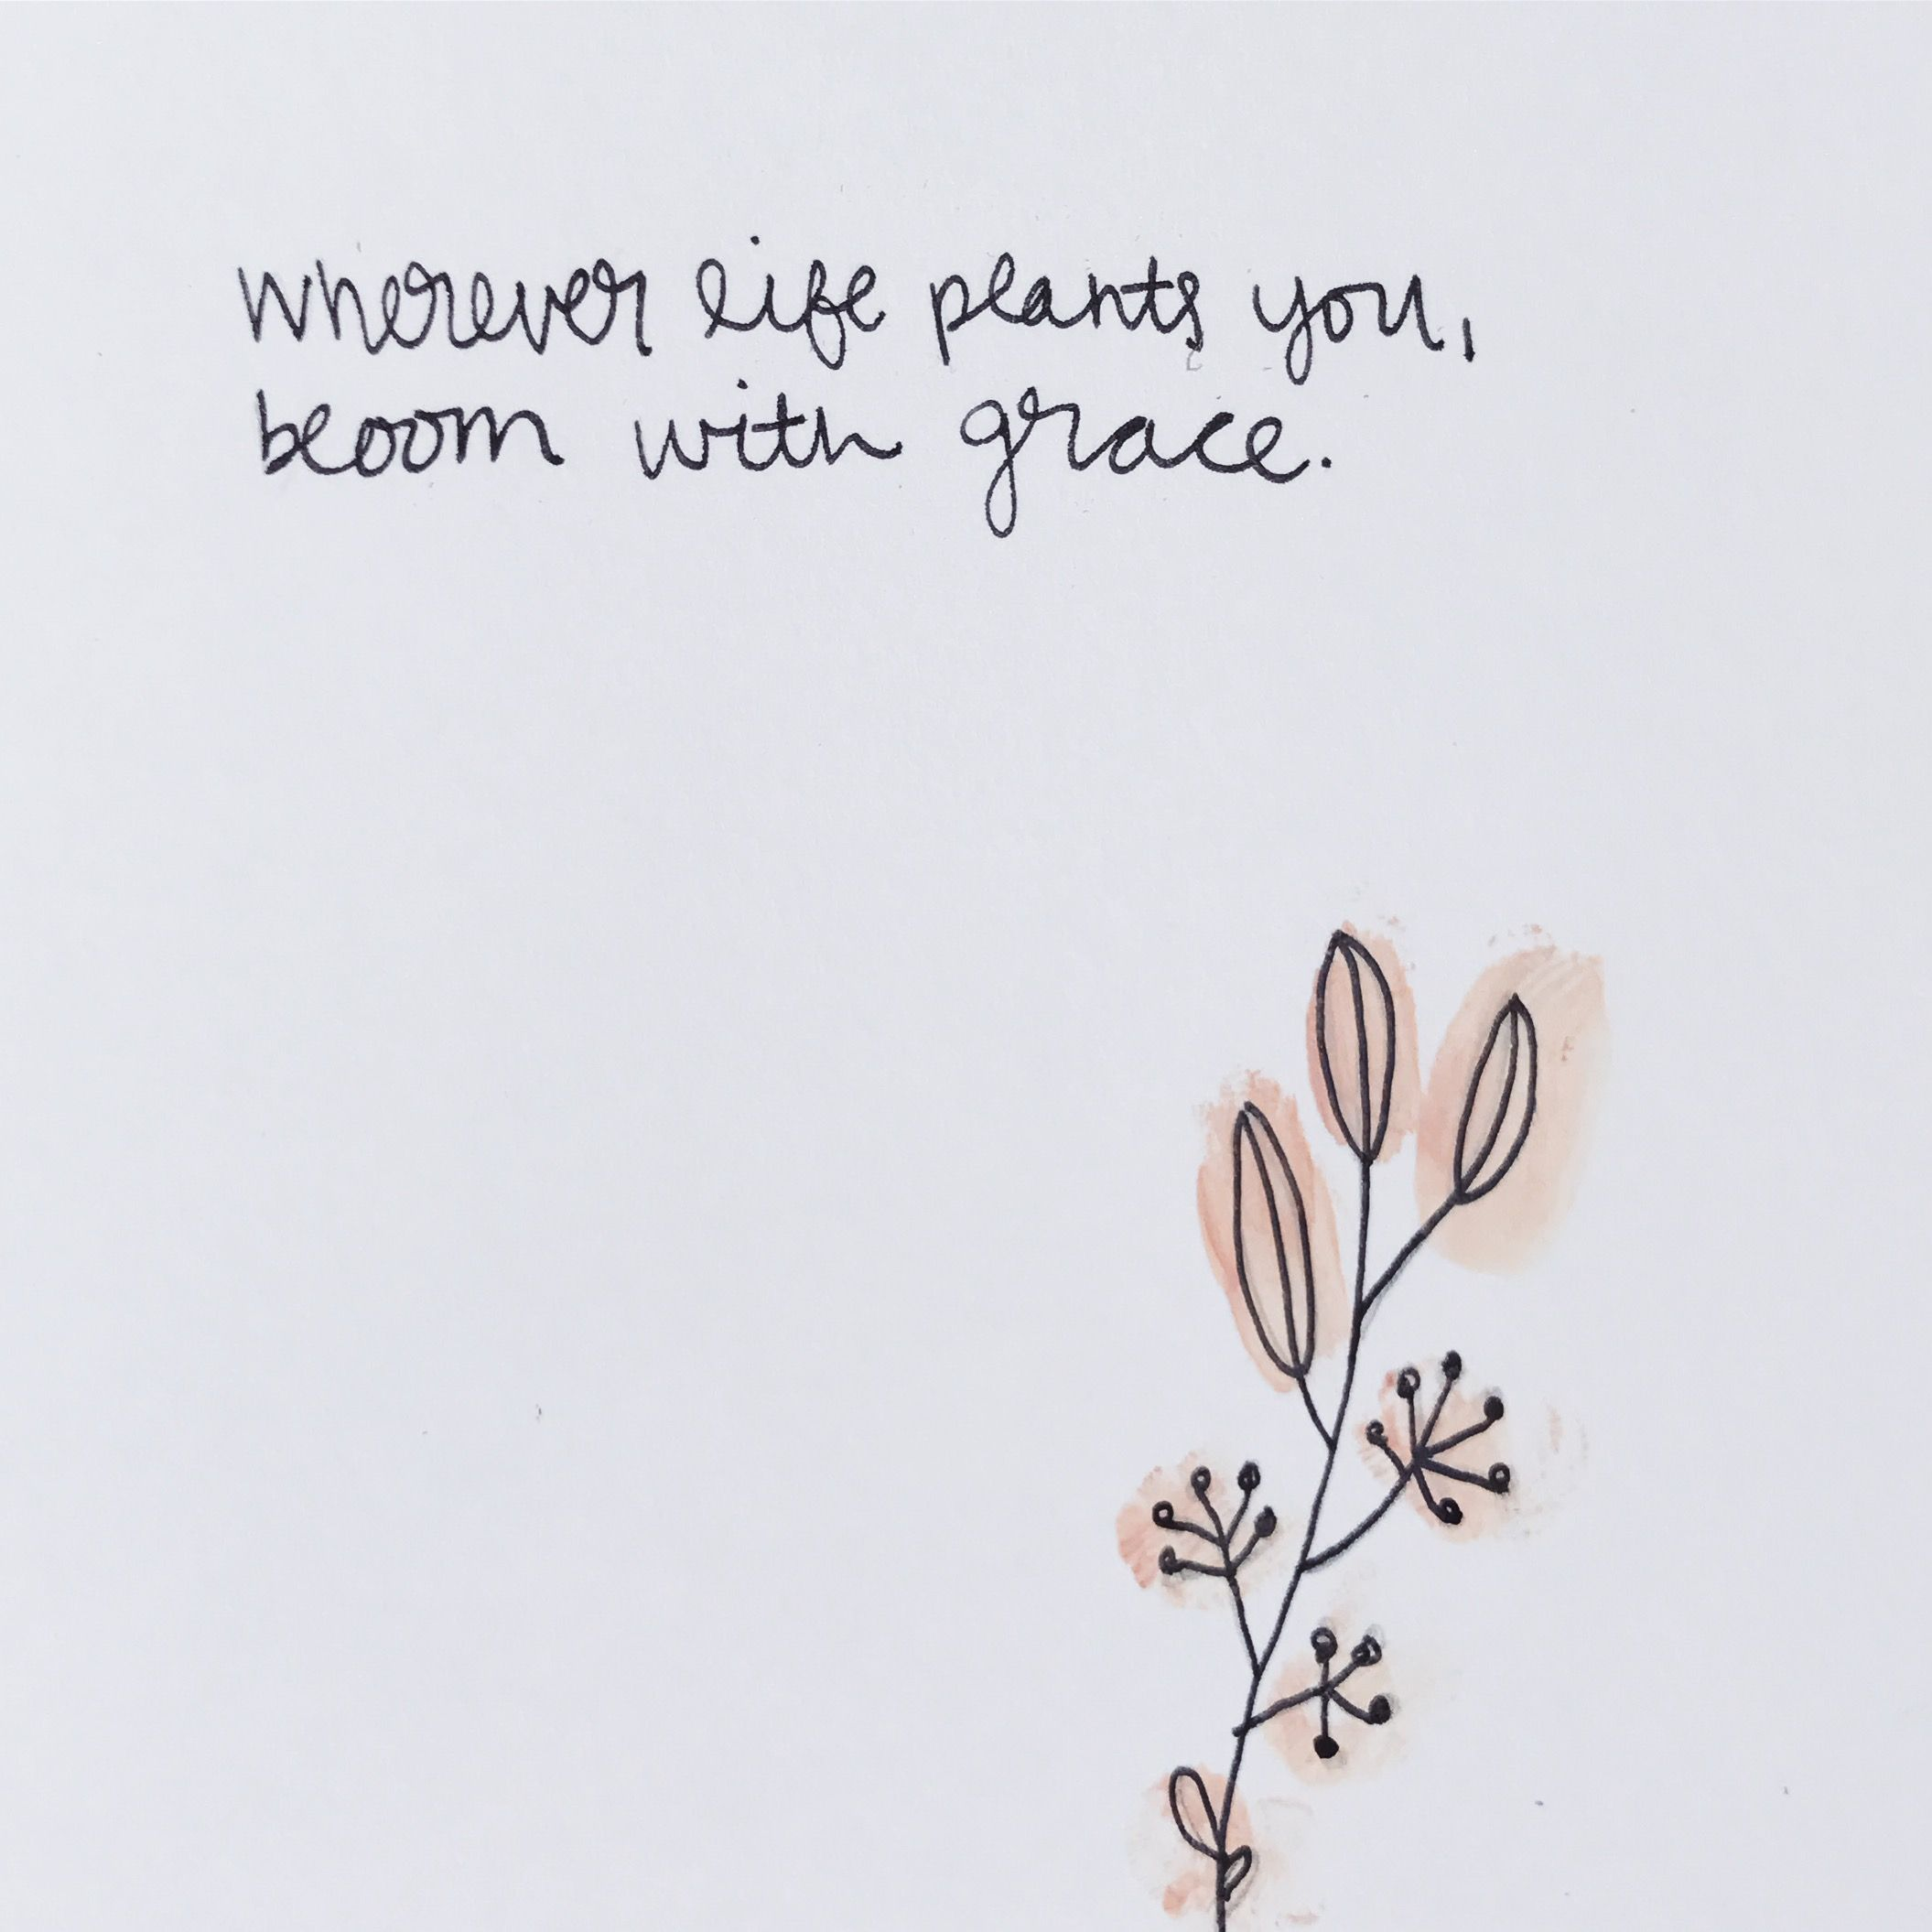 Wherever Life Plants You Bloom With Grace Hand Lettering Illustration By Andrea Klohn Life Is Too Short Quotes Grace Quotes Short Quotes